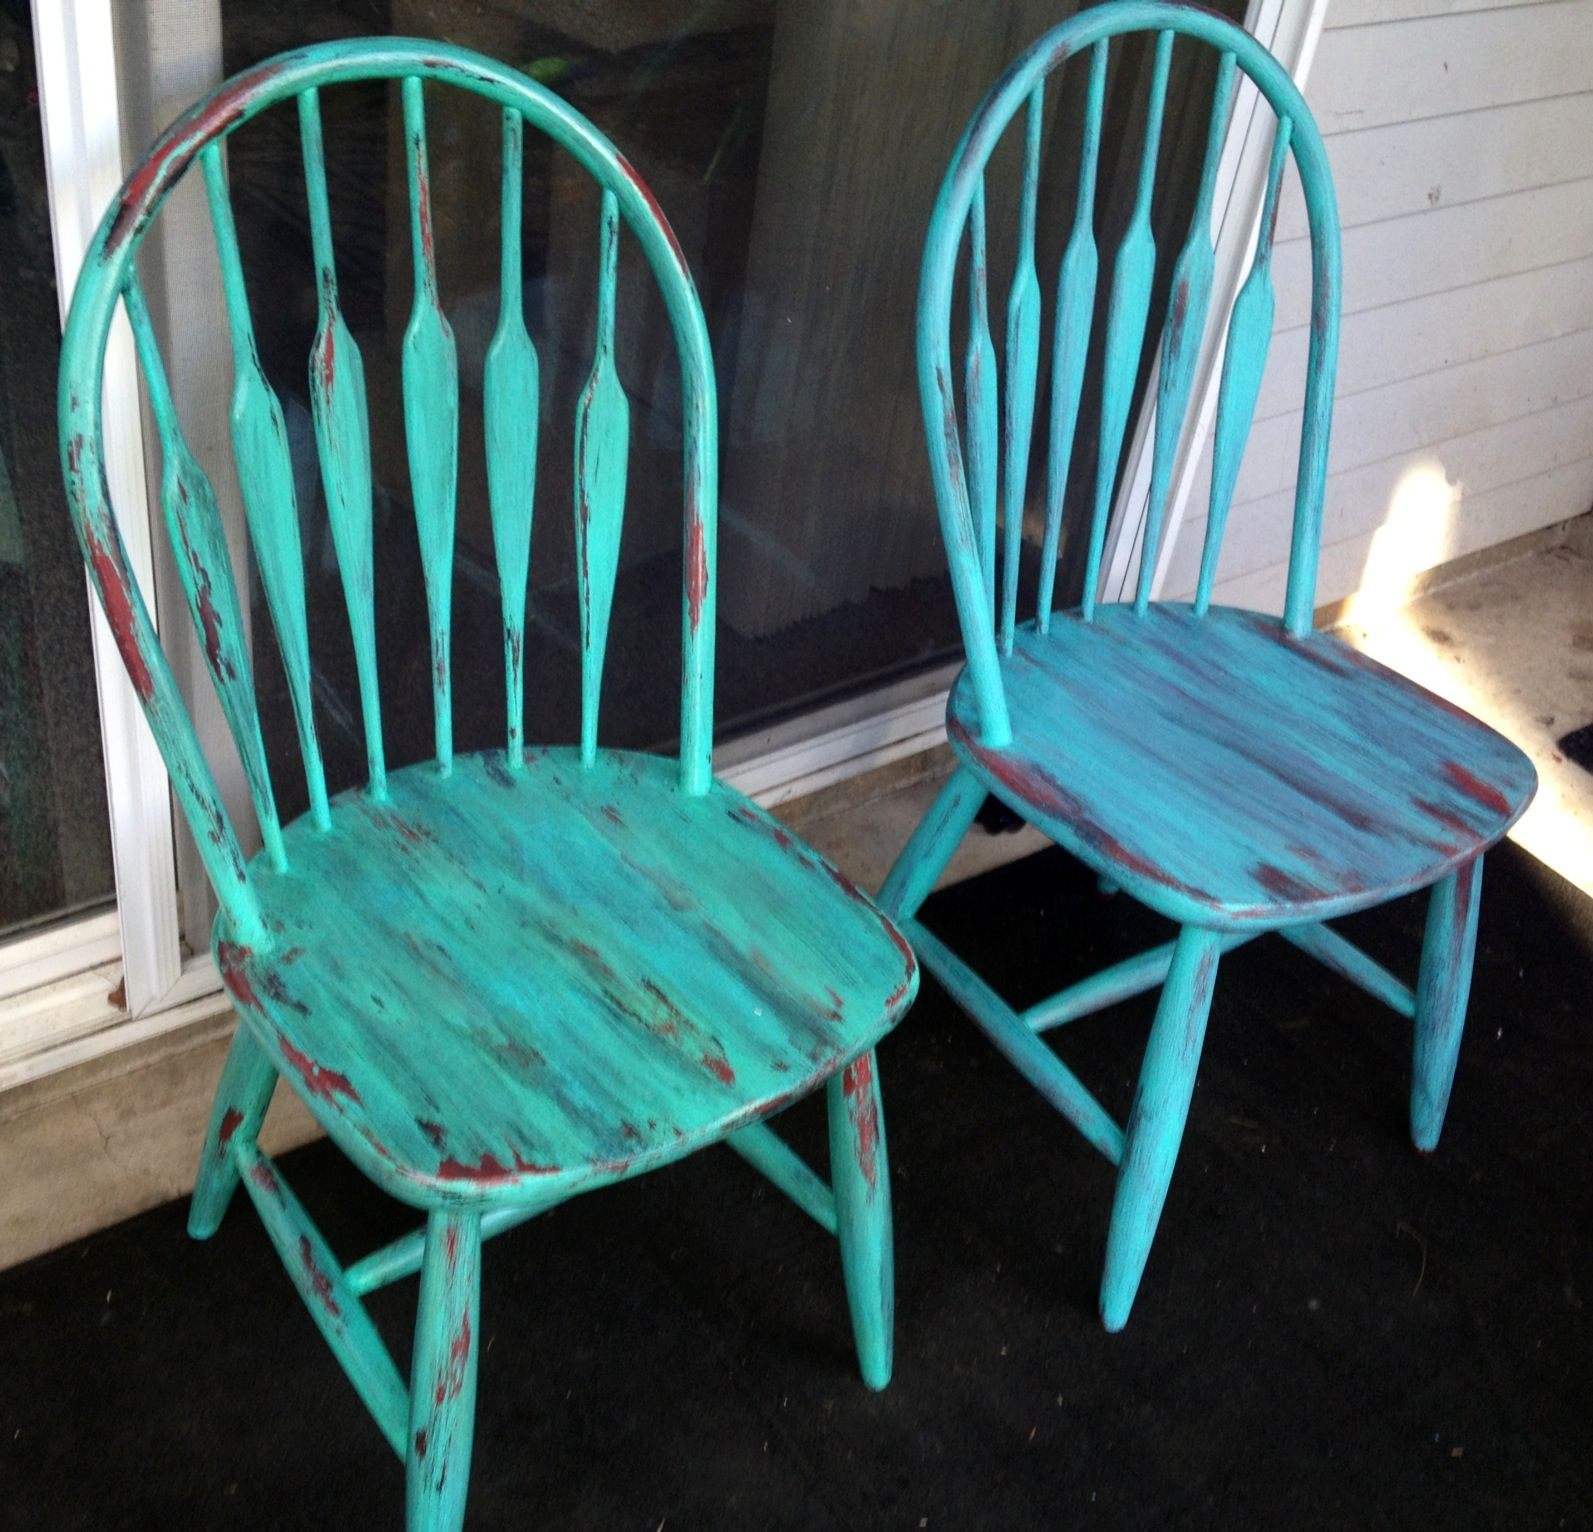 Old kitchen chairs free I turned into fab refurbished furniture. I ...